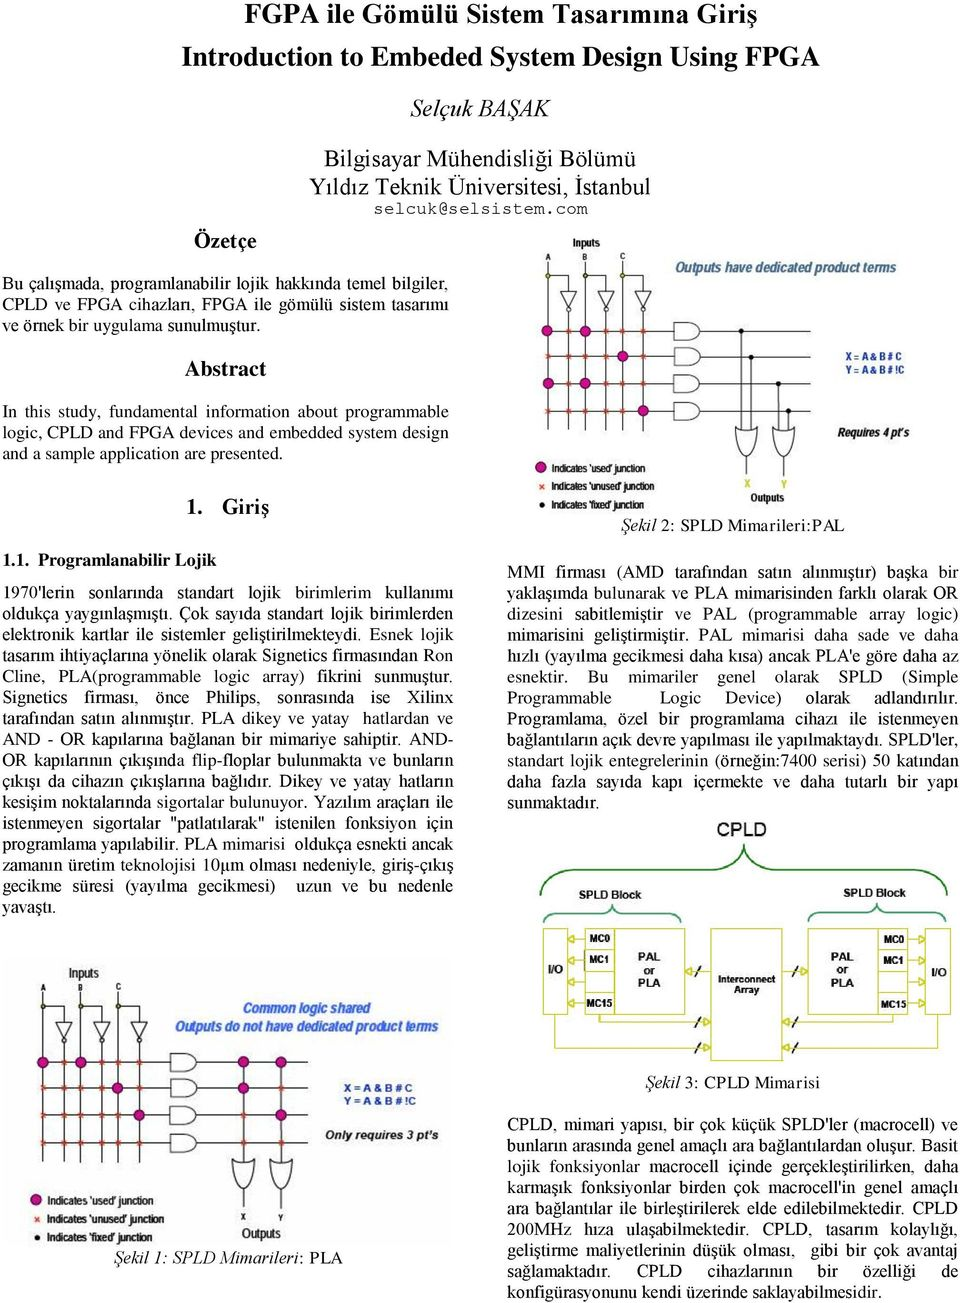 Abstract In this study, fundamental information about programmable logic, CPLD and FPGA devices and embedded system design and a sample application are presented. 1.1. Programlanabilir Lojik 1.